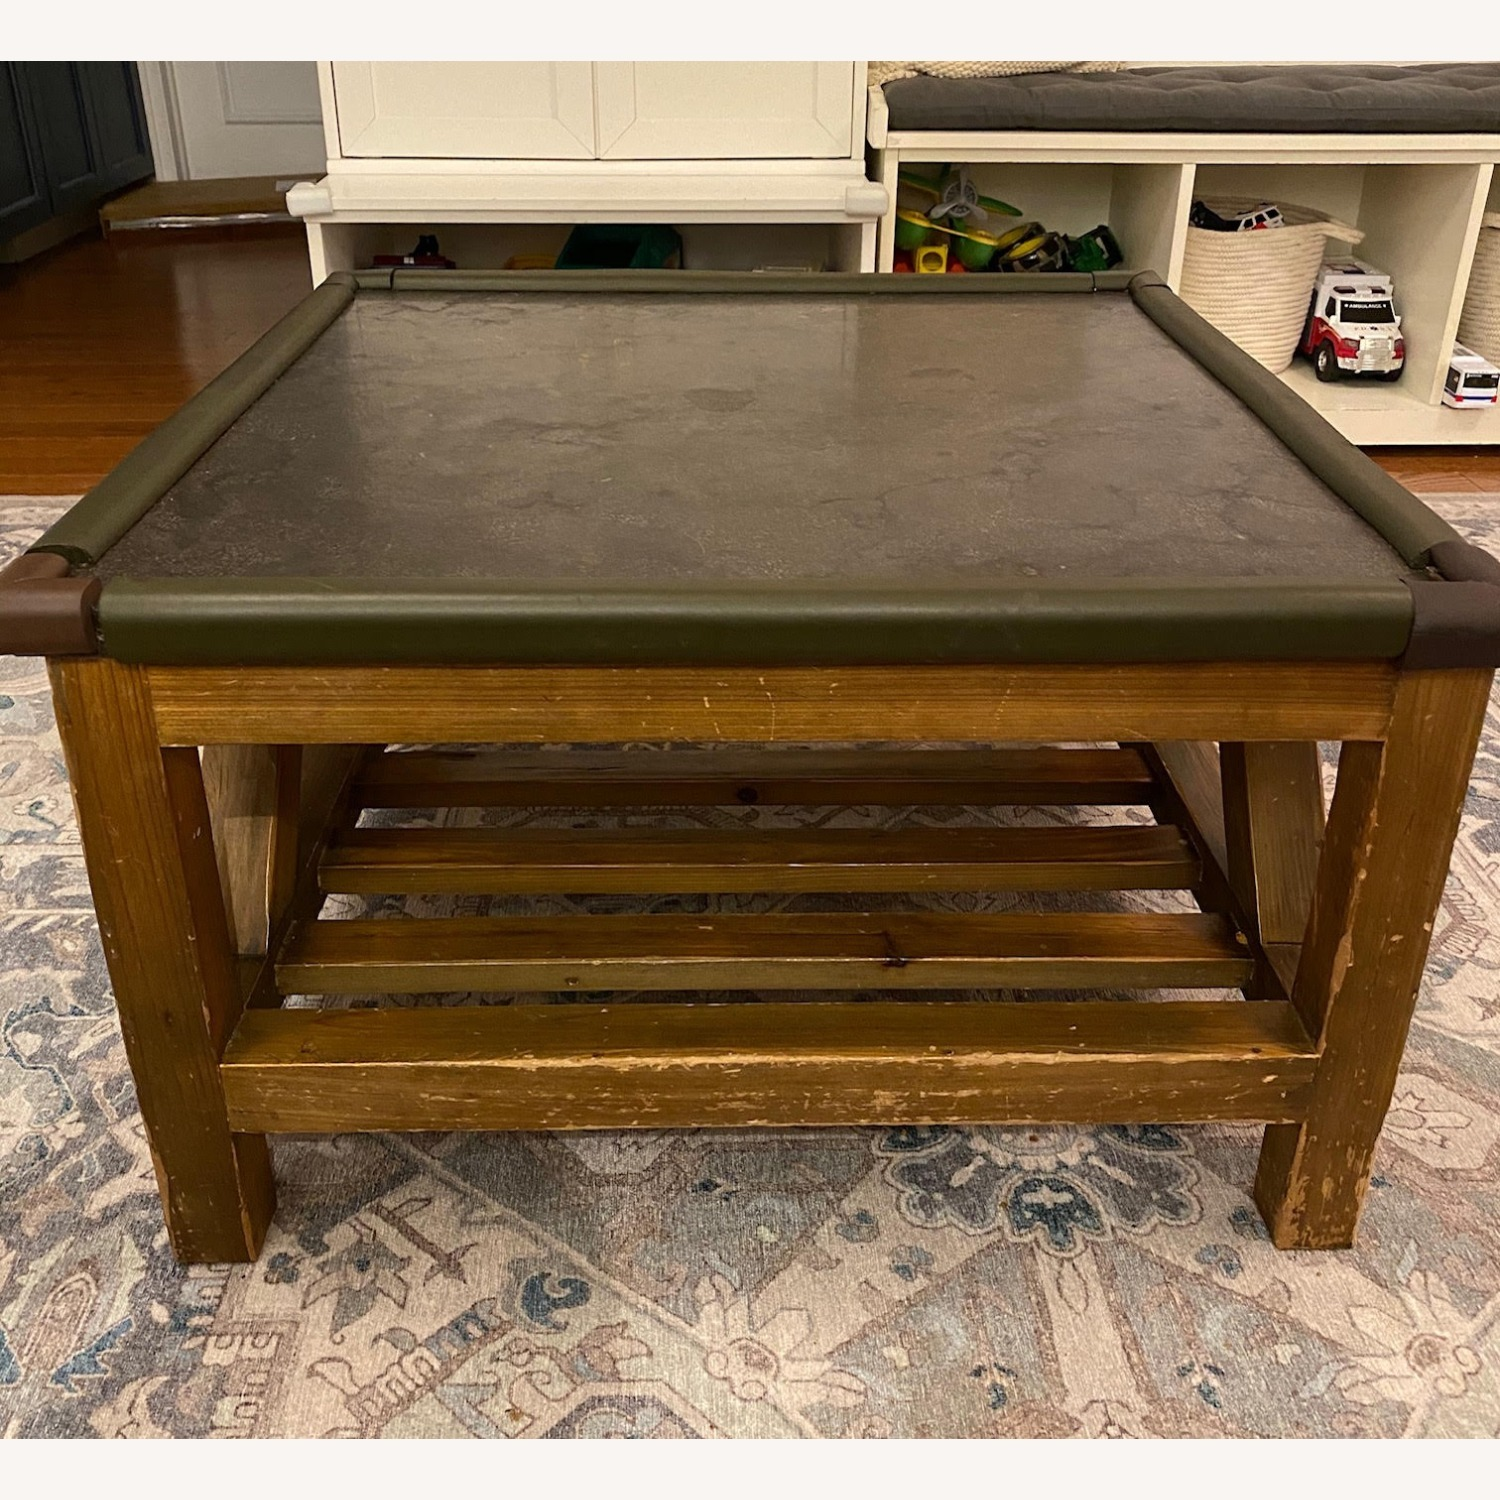 Macy's Natural Wood and Stone Coffee Table - image-3